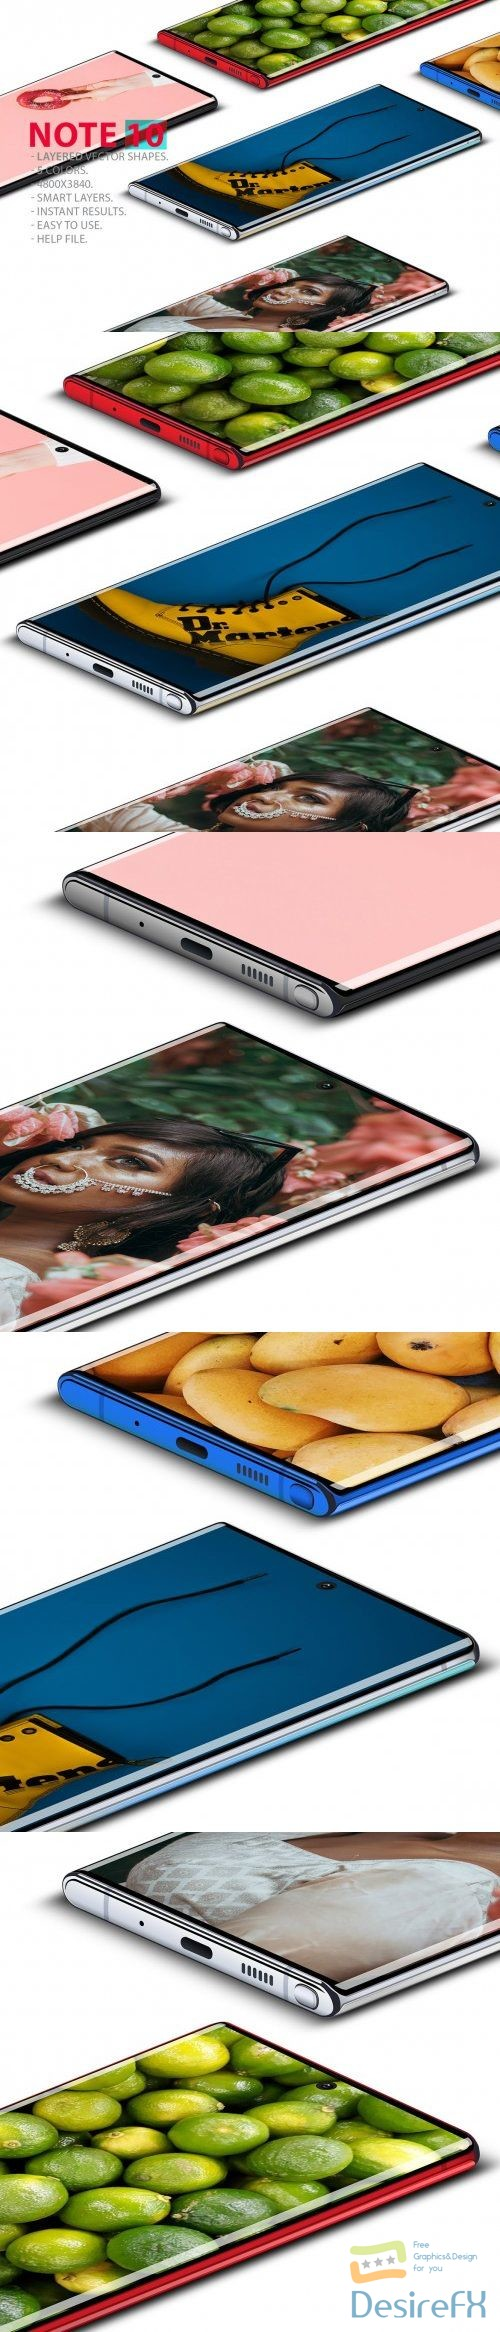 Note 10 Layered PSD MockUps